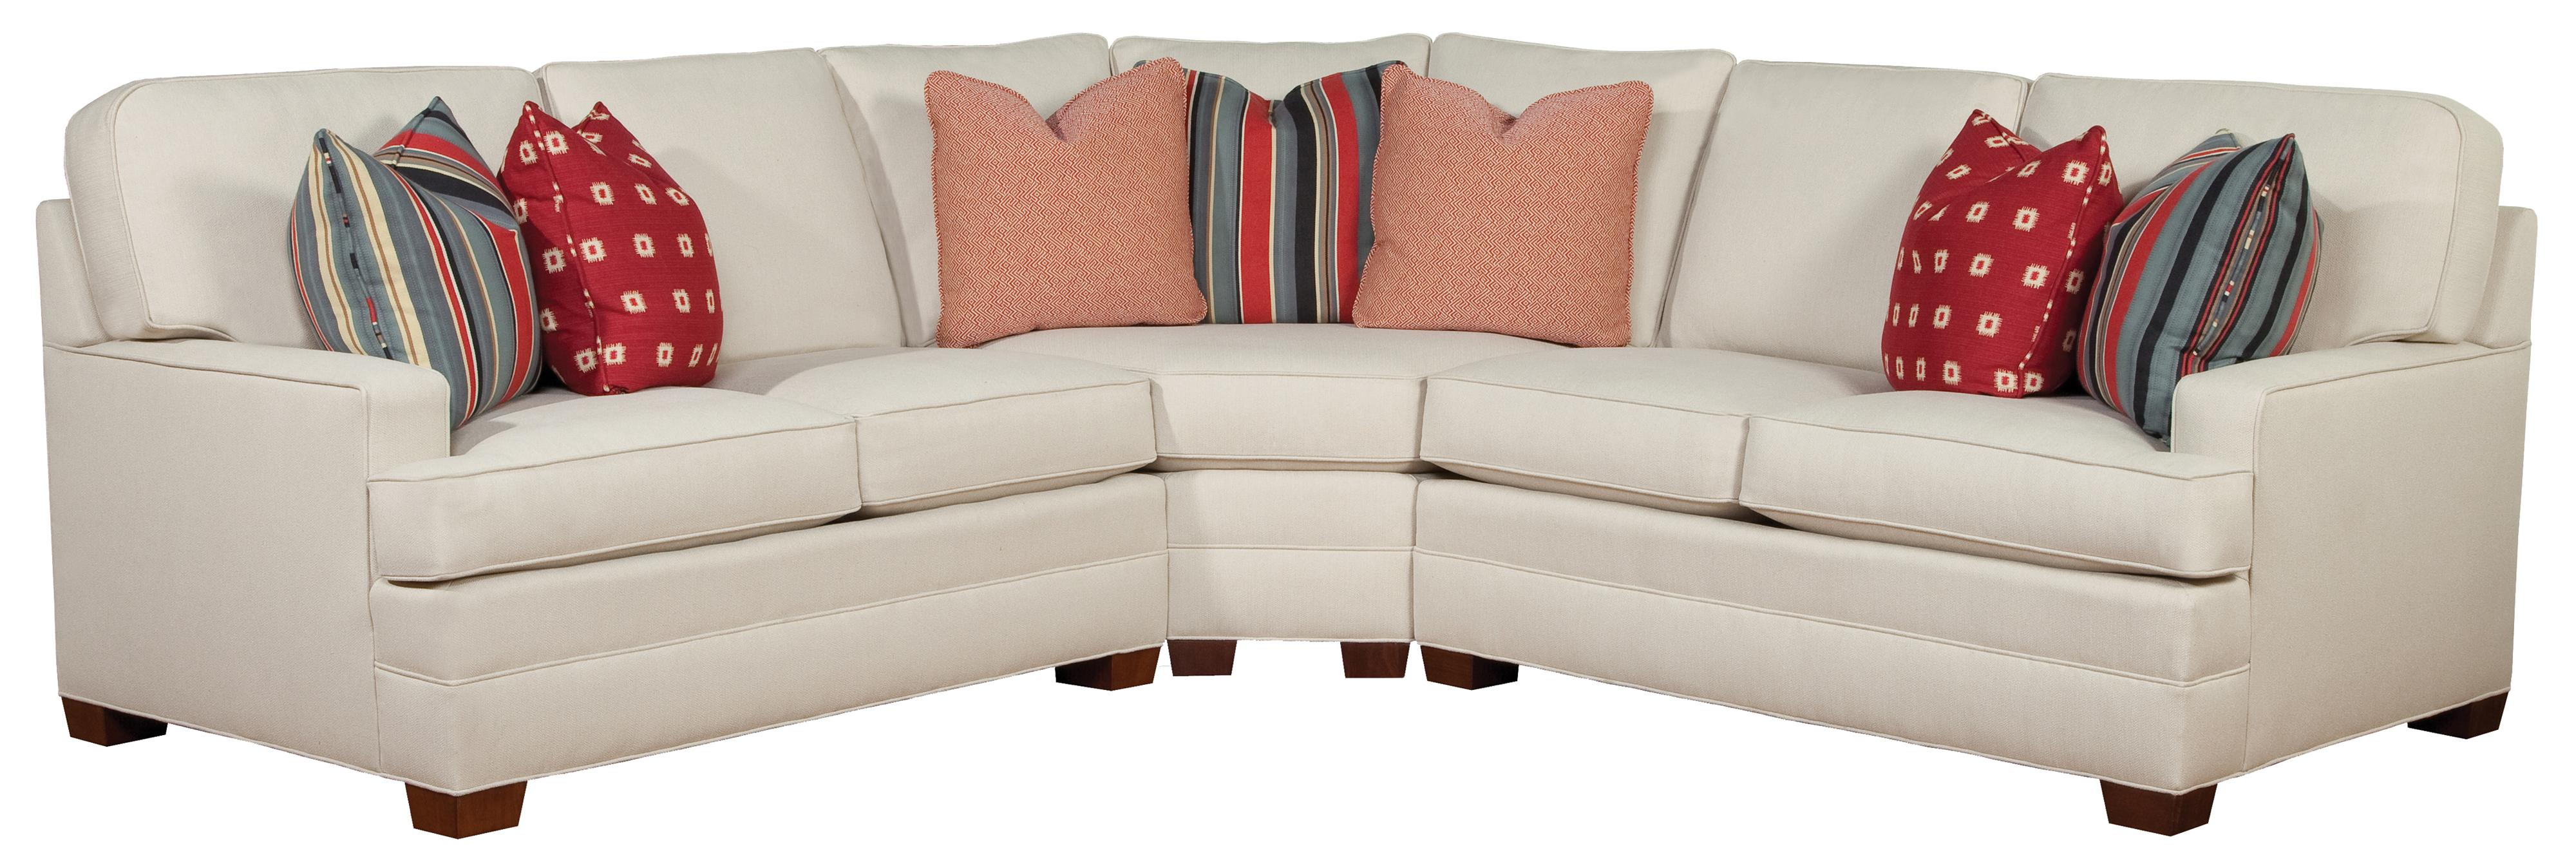 Huntington House 2061 Sectional - Item Number: 2061-43+32+42